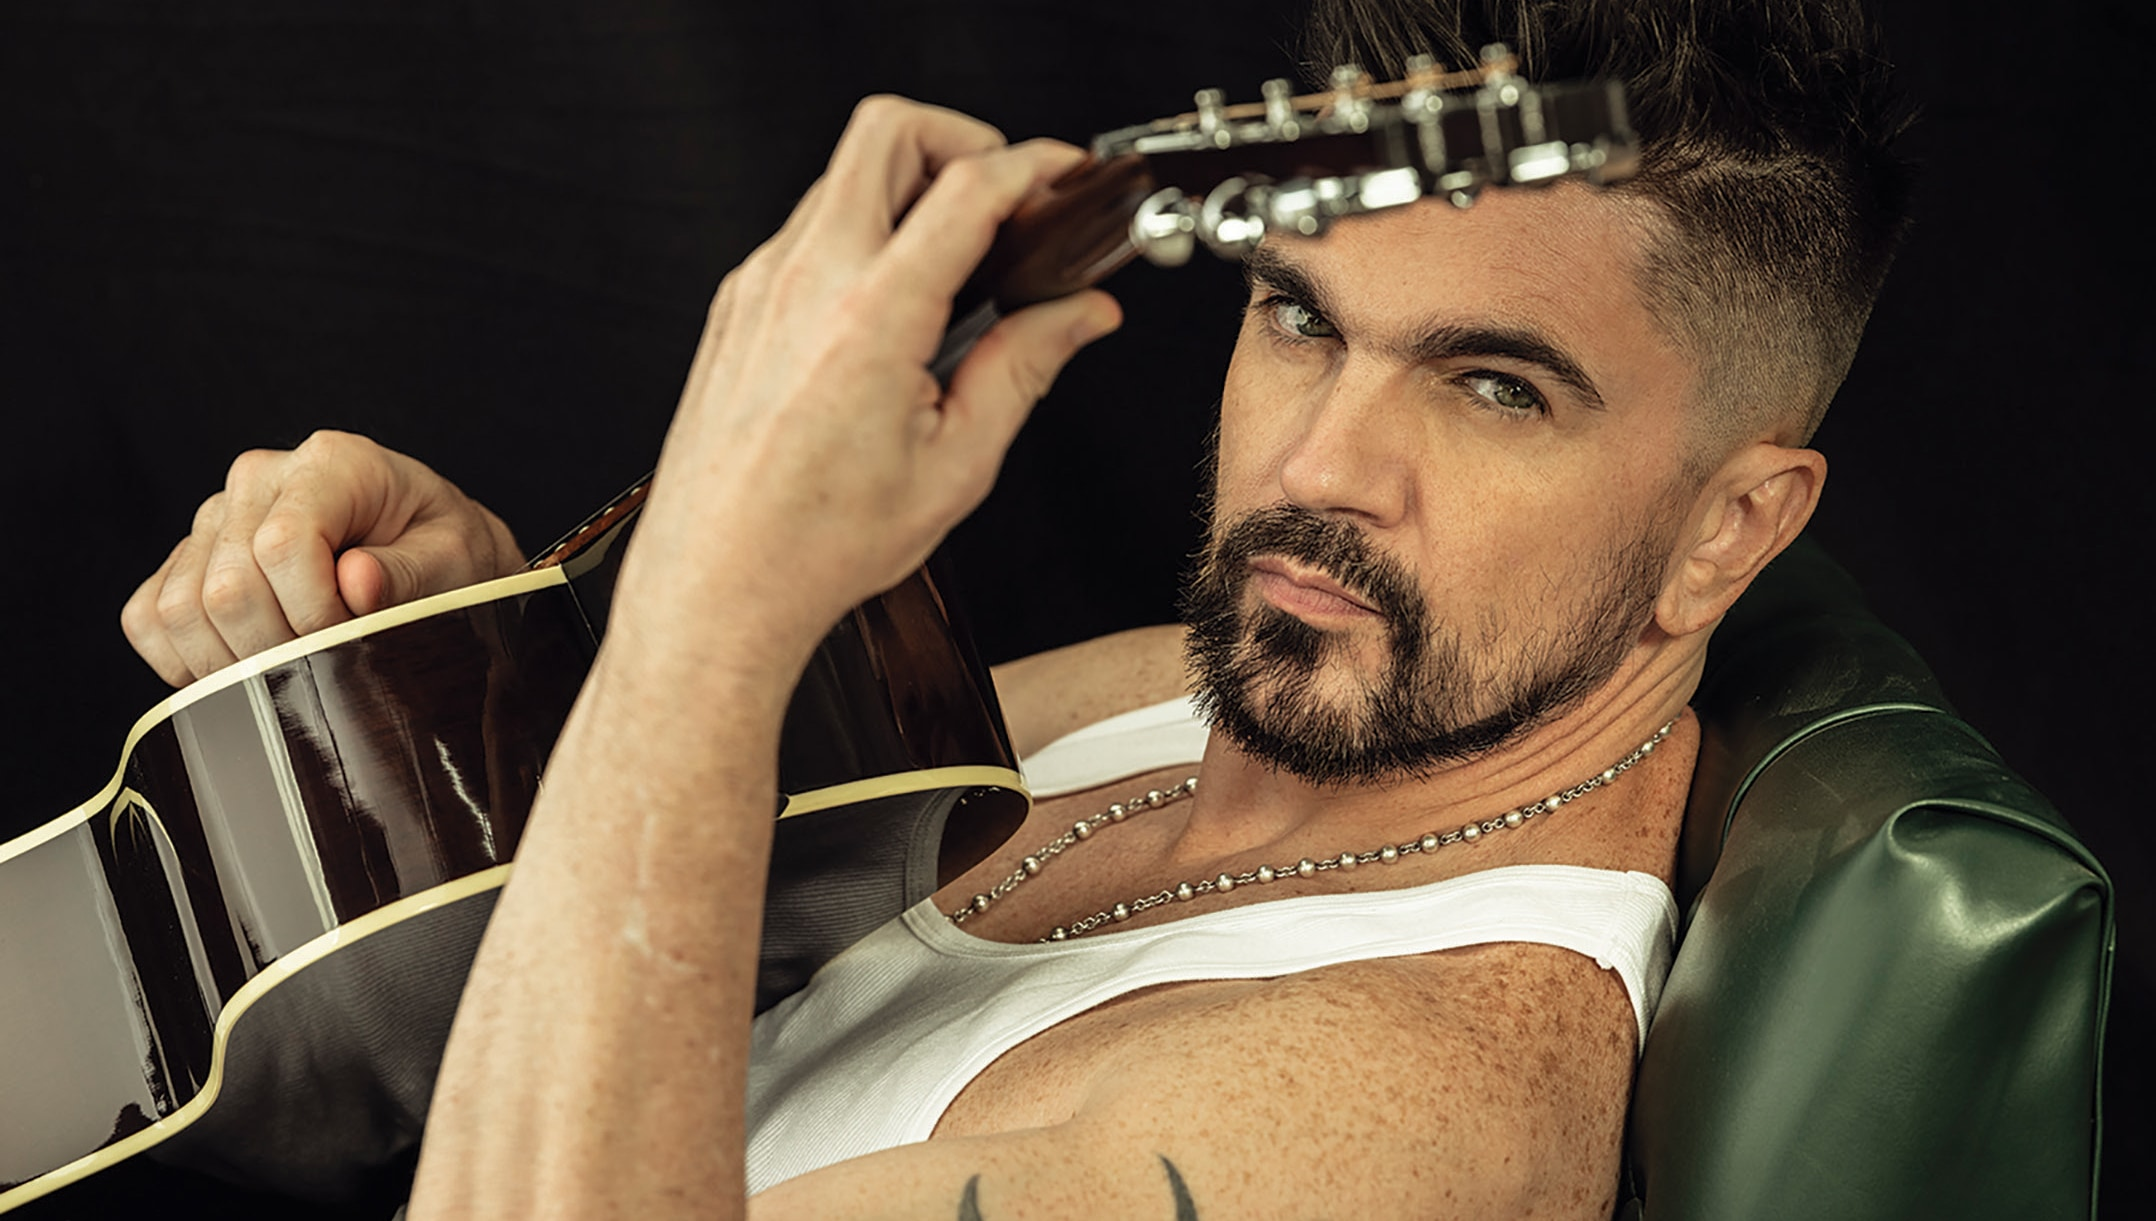 Latin Singer Juanes on How Miami Inspires Him & His Advice for Aspiring Artists